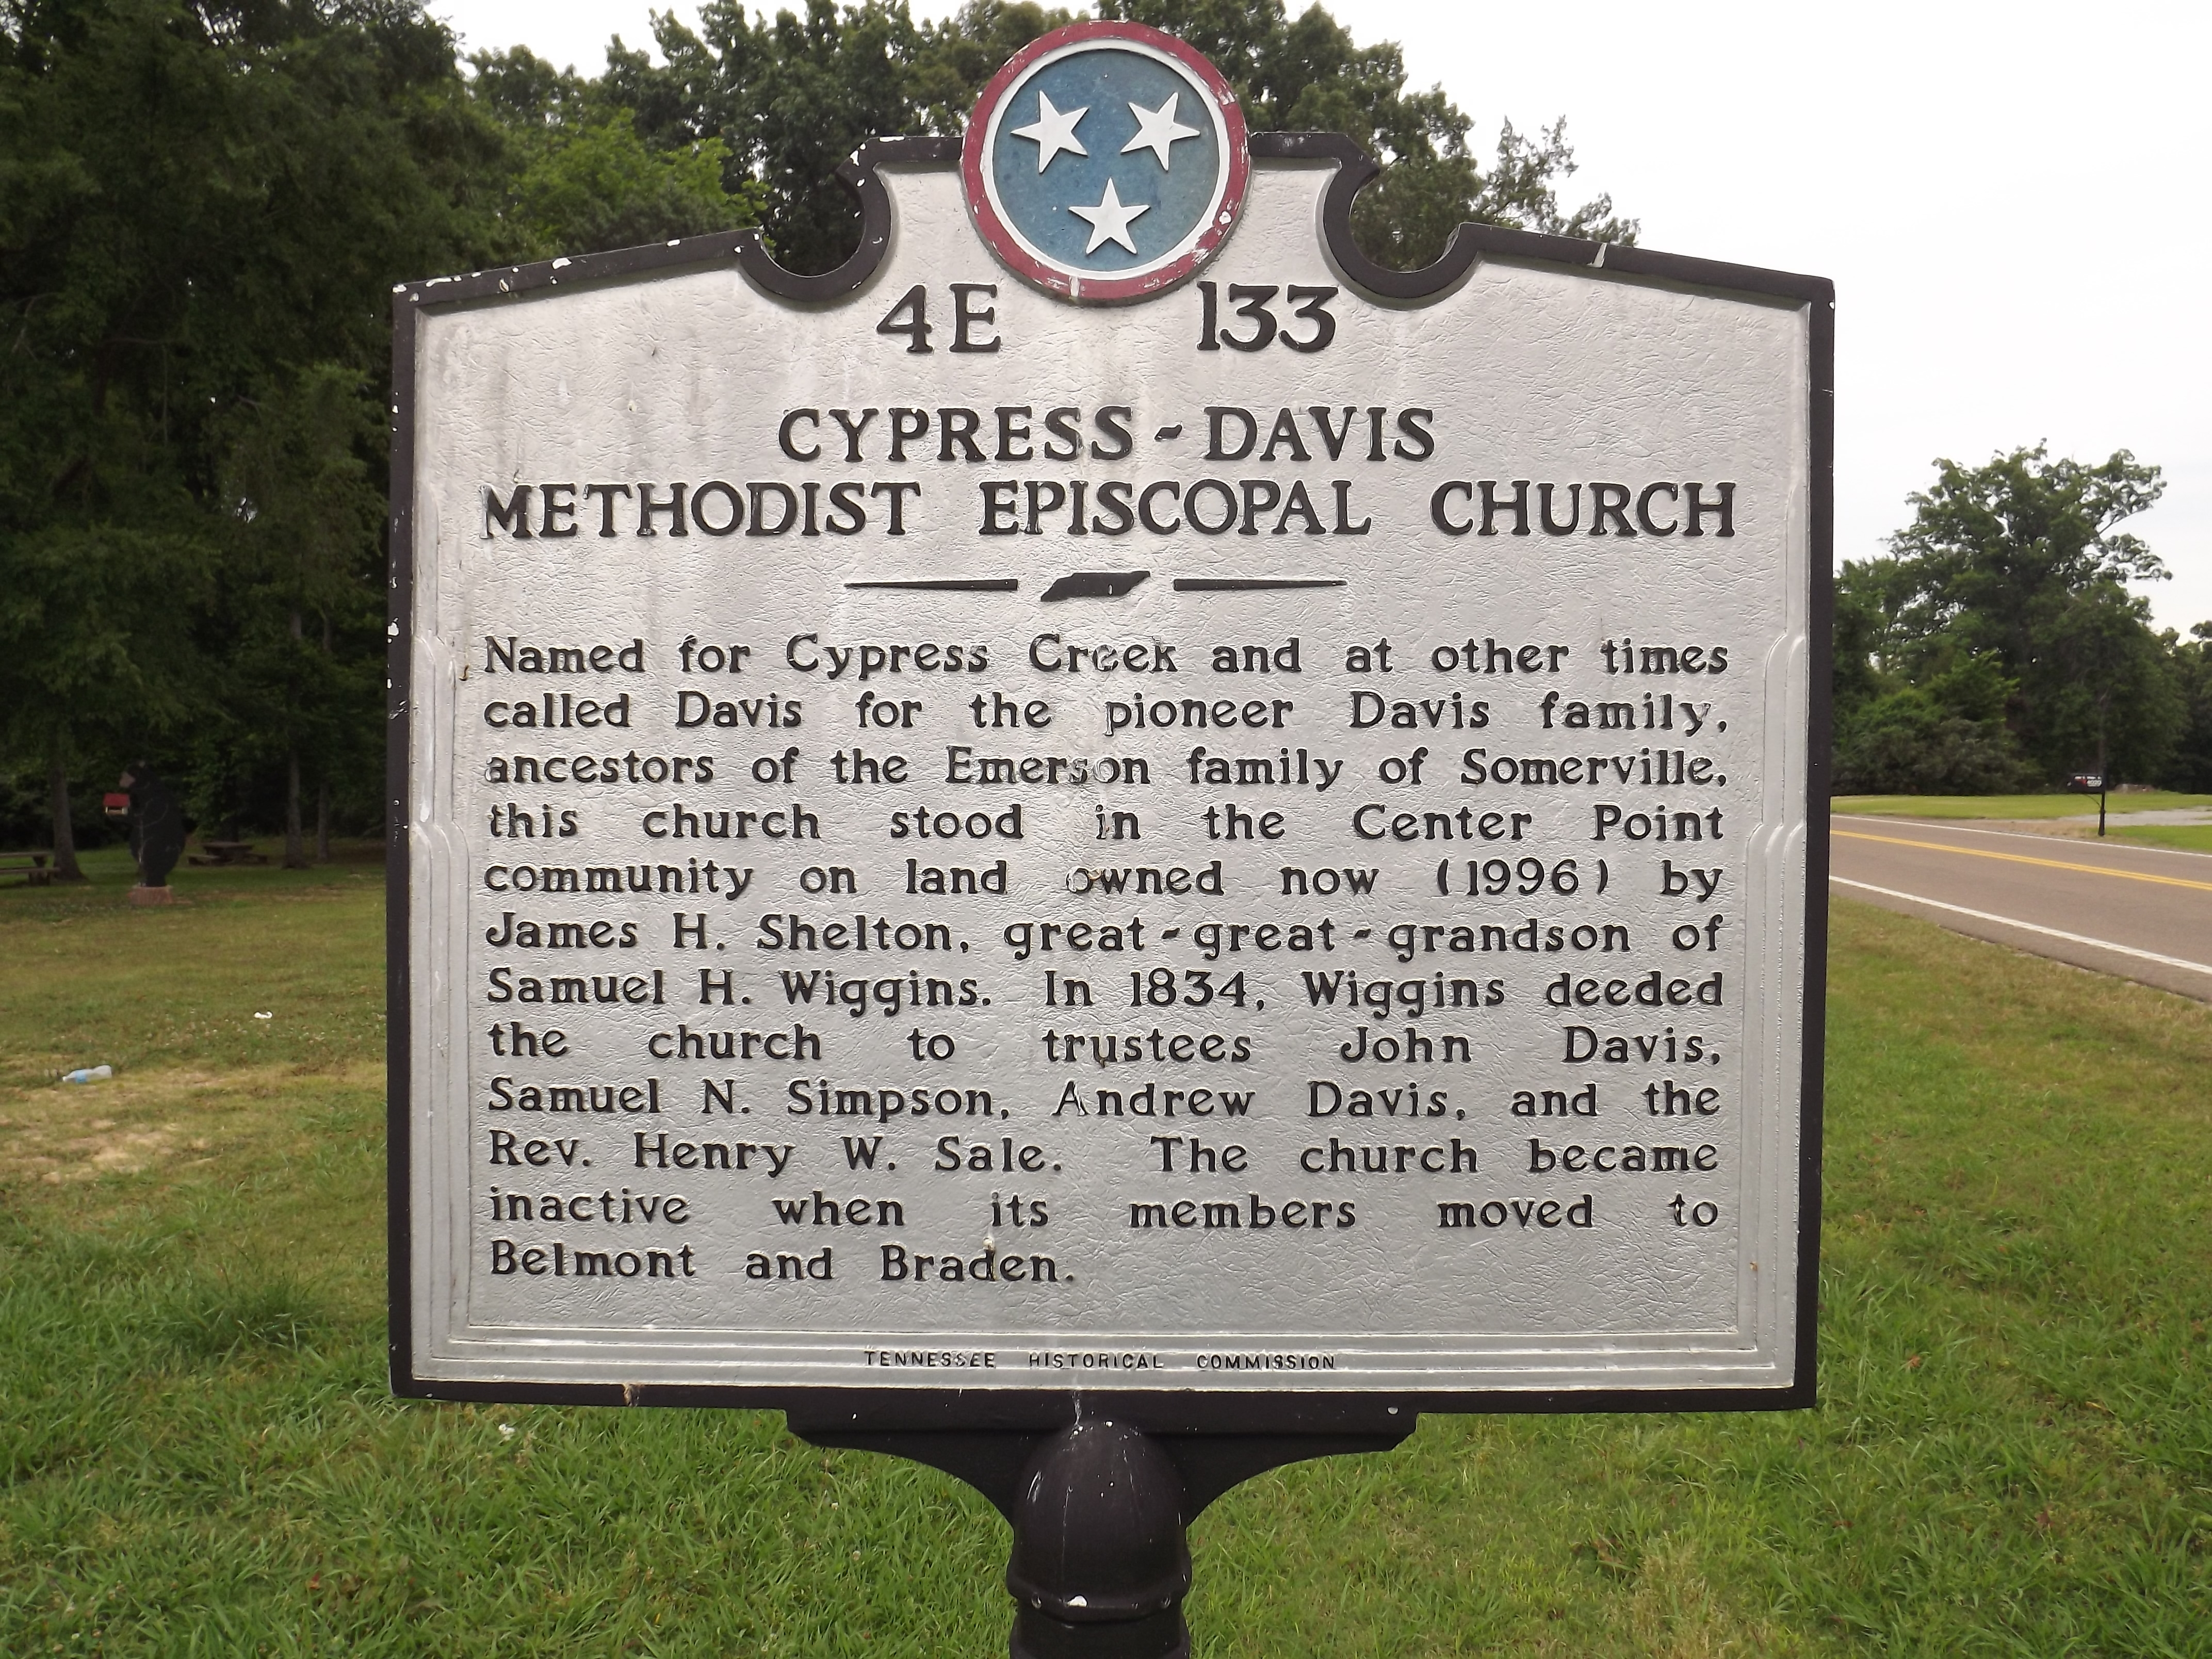 Cypress - Davis Methodist Episcopal Church Marker